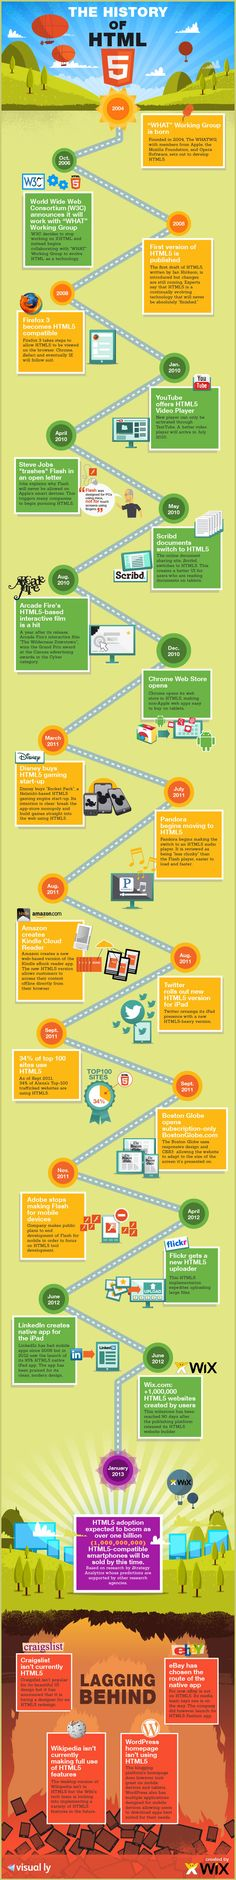 historyofhtml5 #Infographic